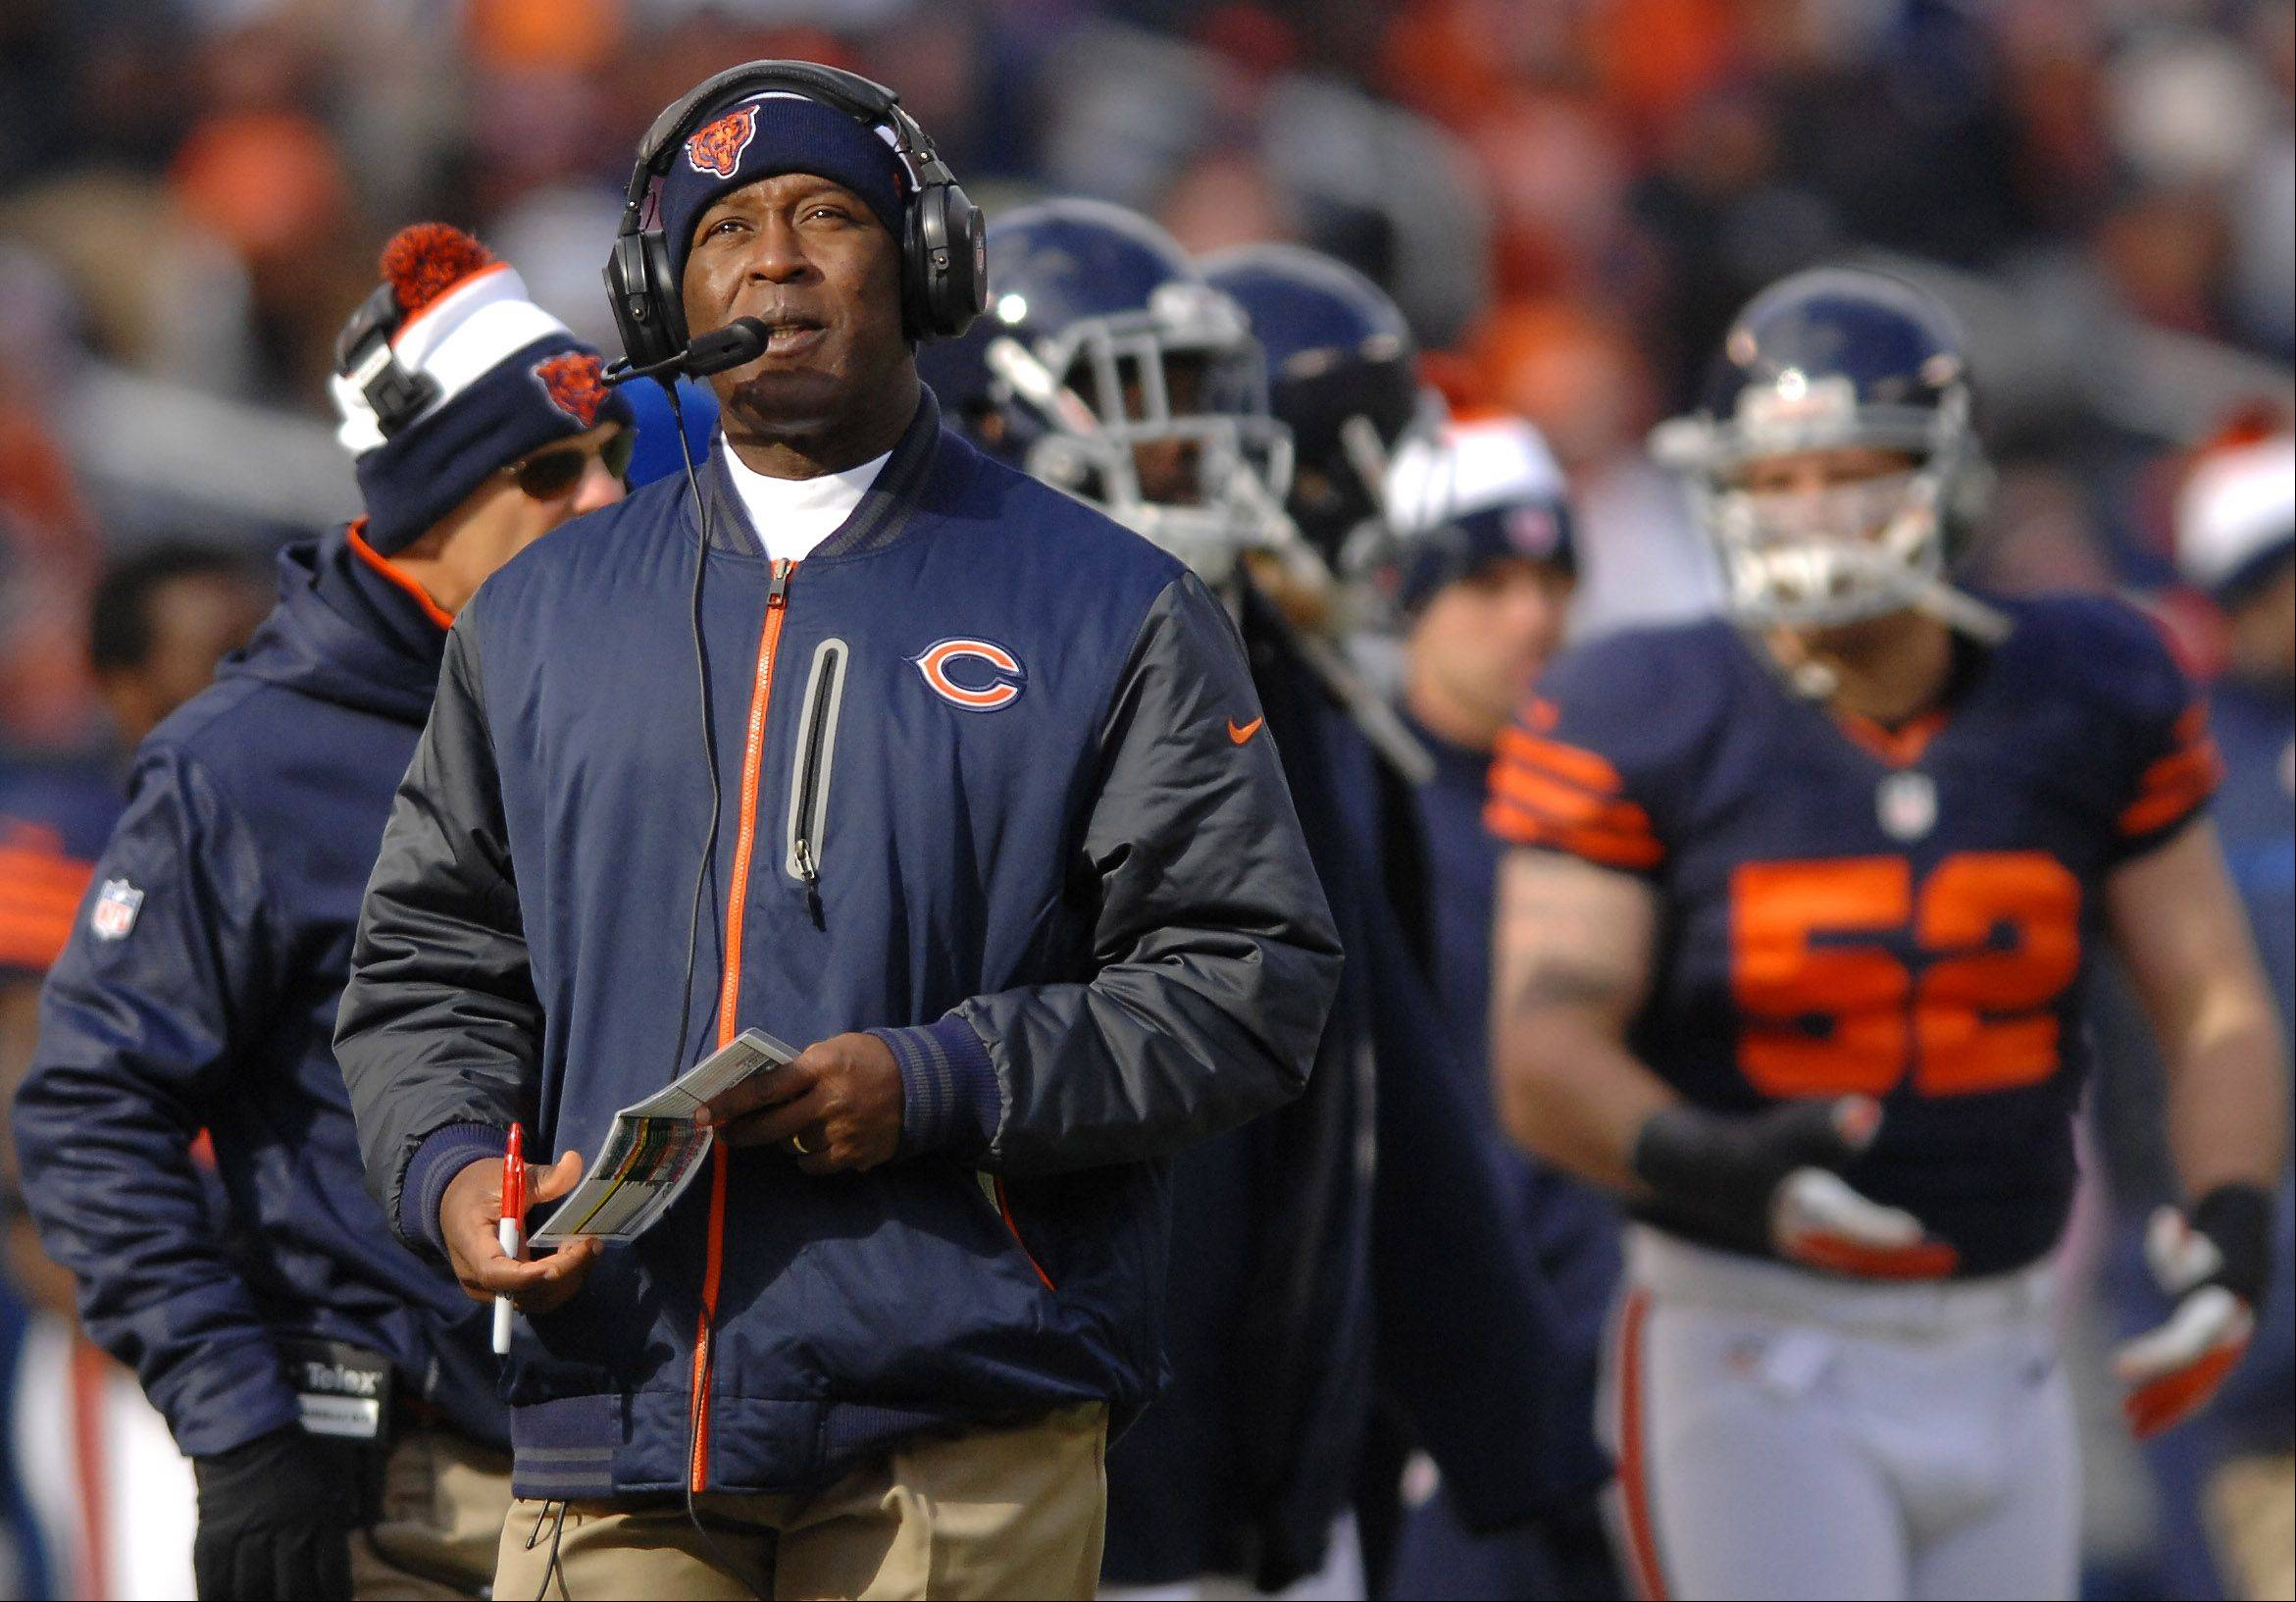 Bears head coach Lovie Smith says Jay Cutler is improving, but he won't practice or play until doctors say he's completely healed and ready.